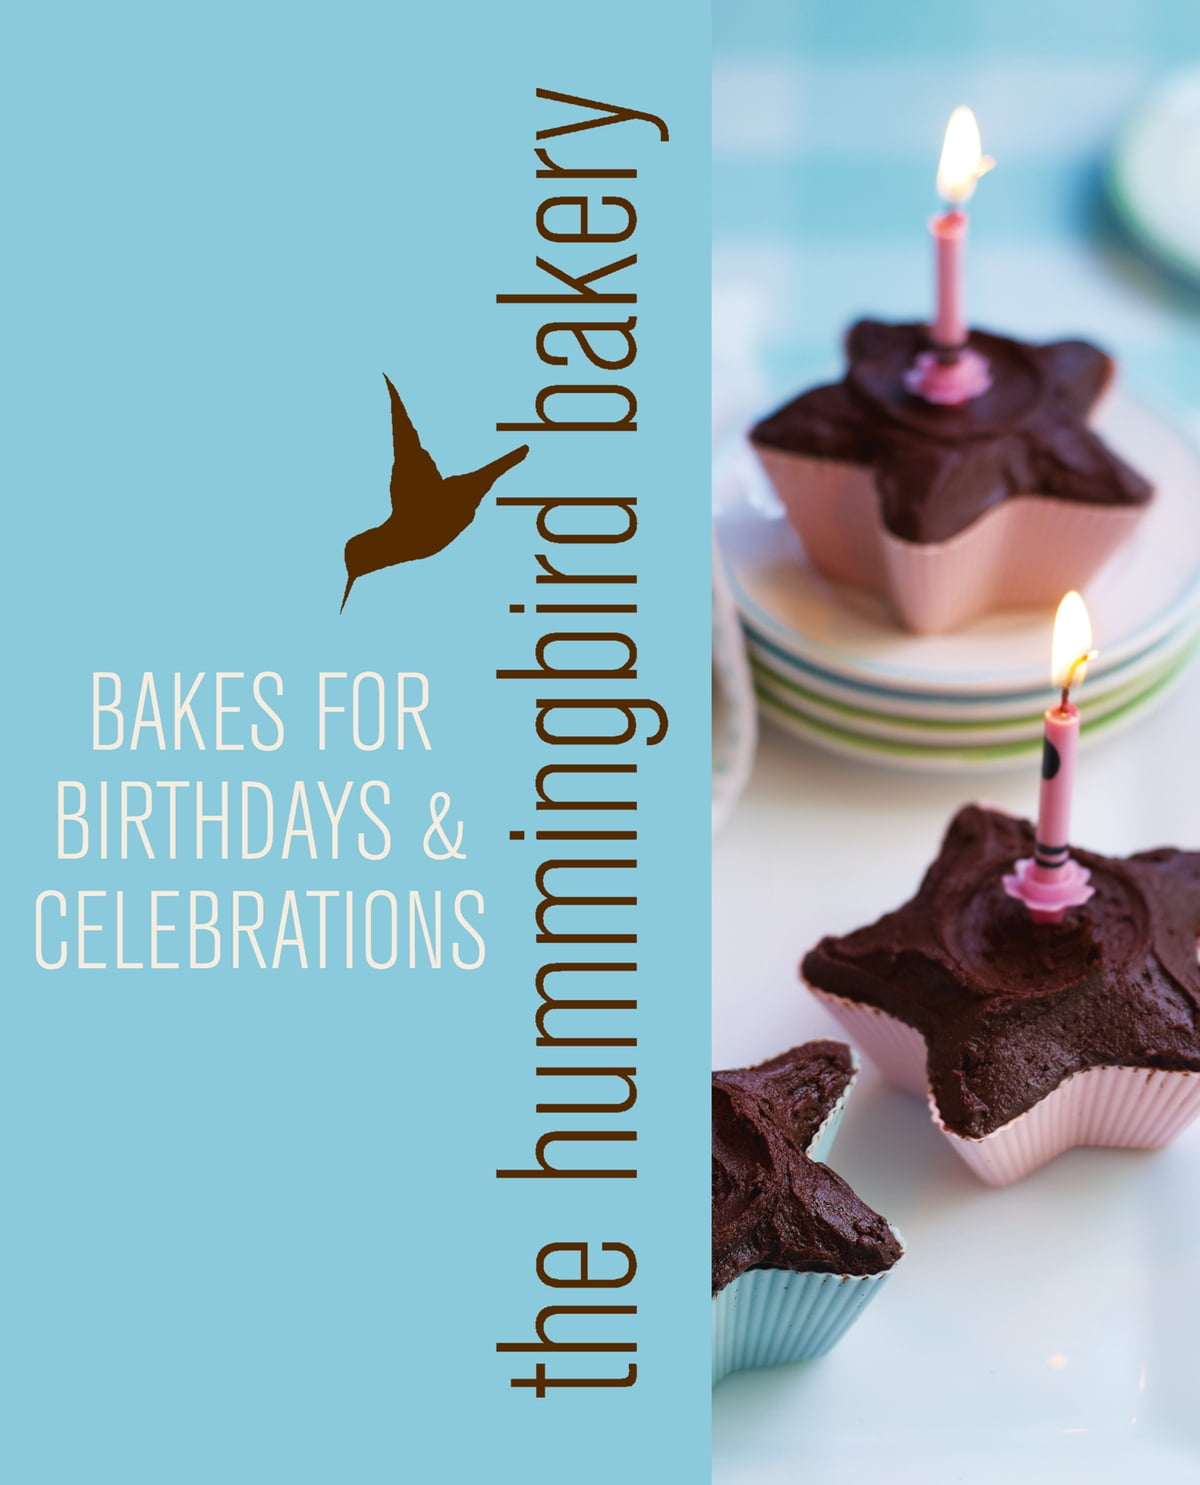 Hummingbird Bakery Bakes For Birthdays And Celebrations An Extract From Cake Days EBook By Tarek Malouf